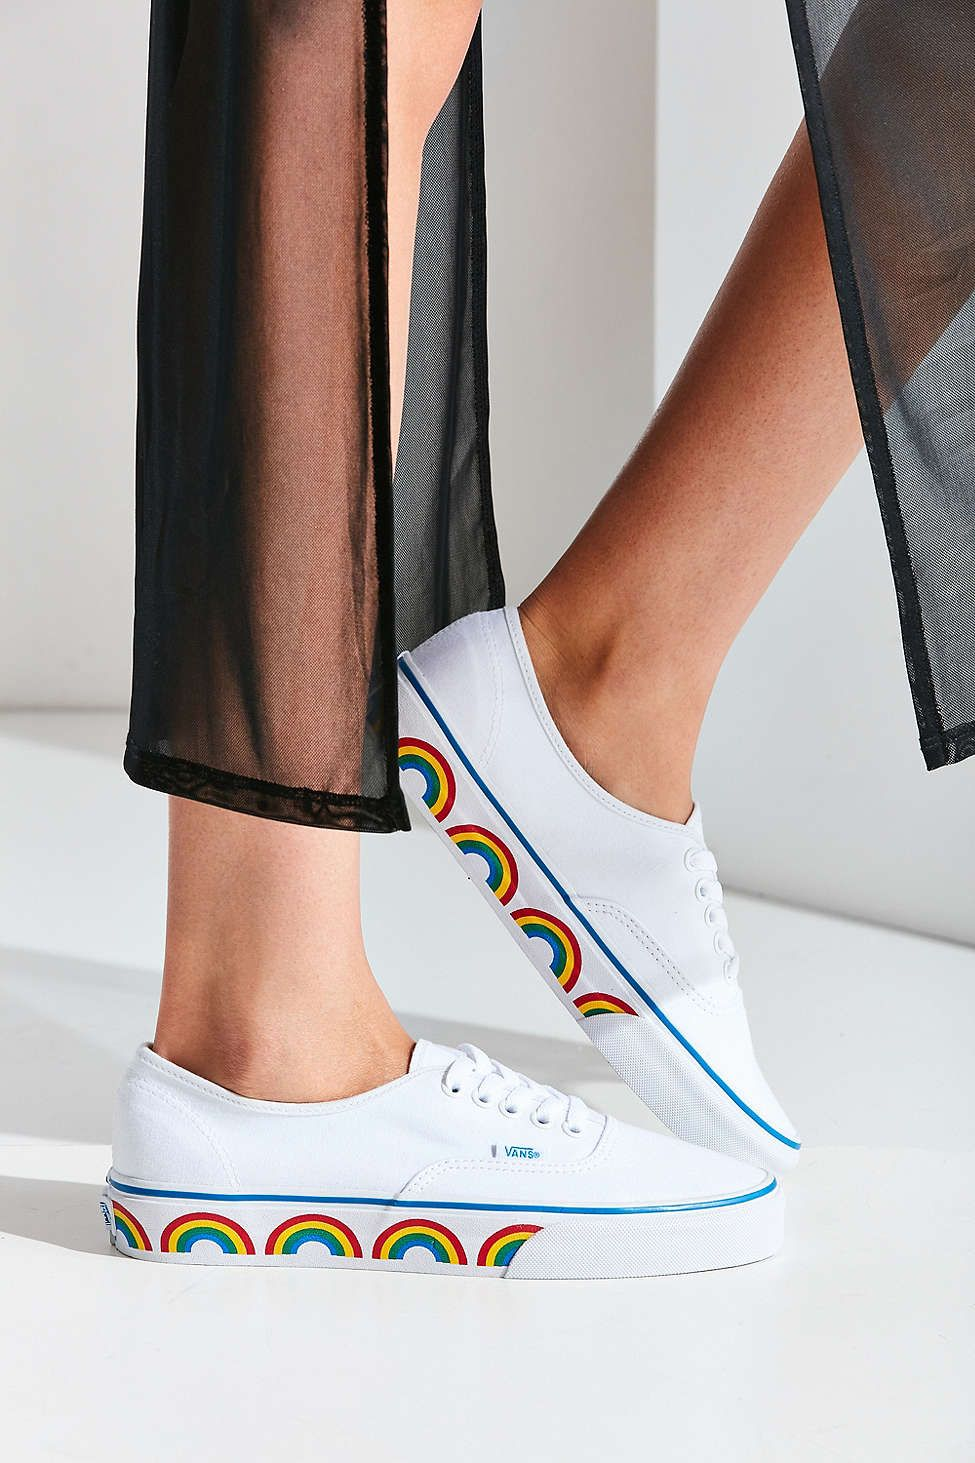 Vans Authentic Rainbow Sole Sneaker